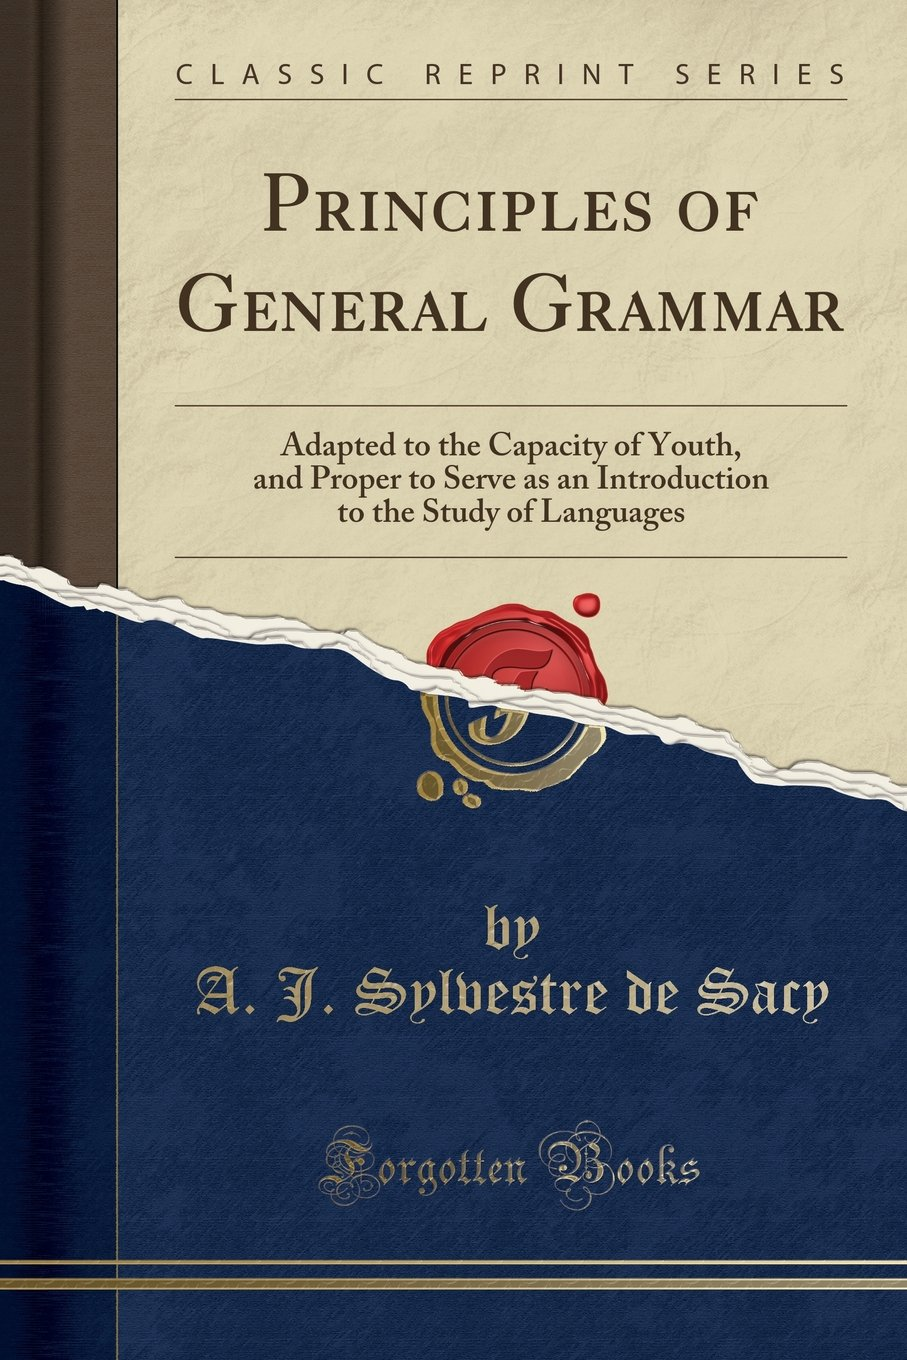 Download Principles of General Grammar: Adapted to the Capacity of Youth, and Proper to Serve as an Introduction to the Study of Languages (Classic Reprint) PDF